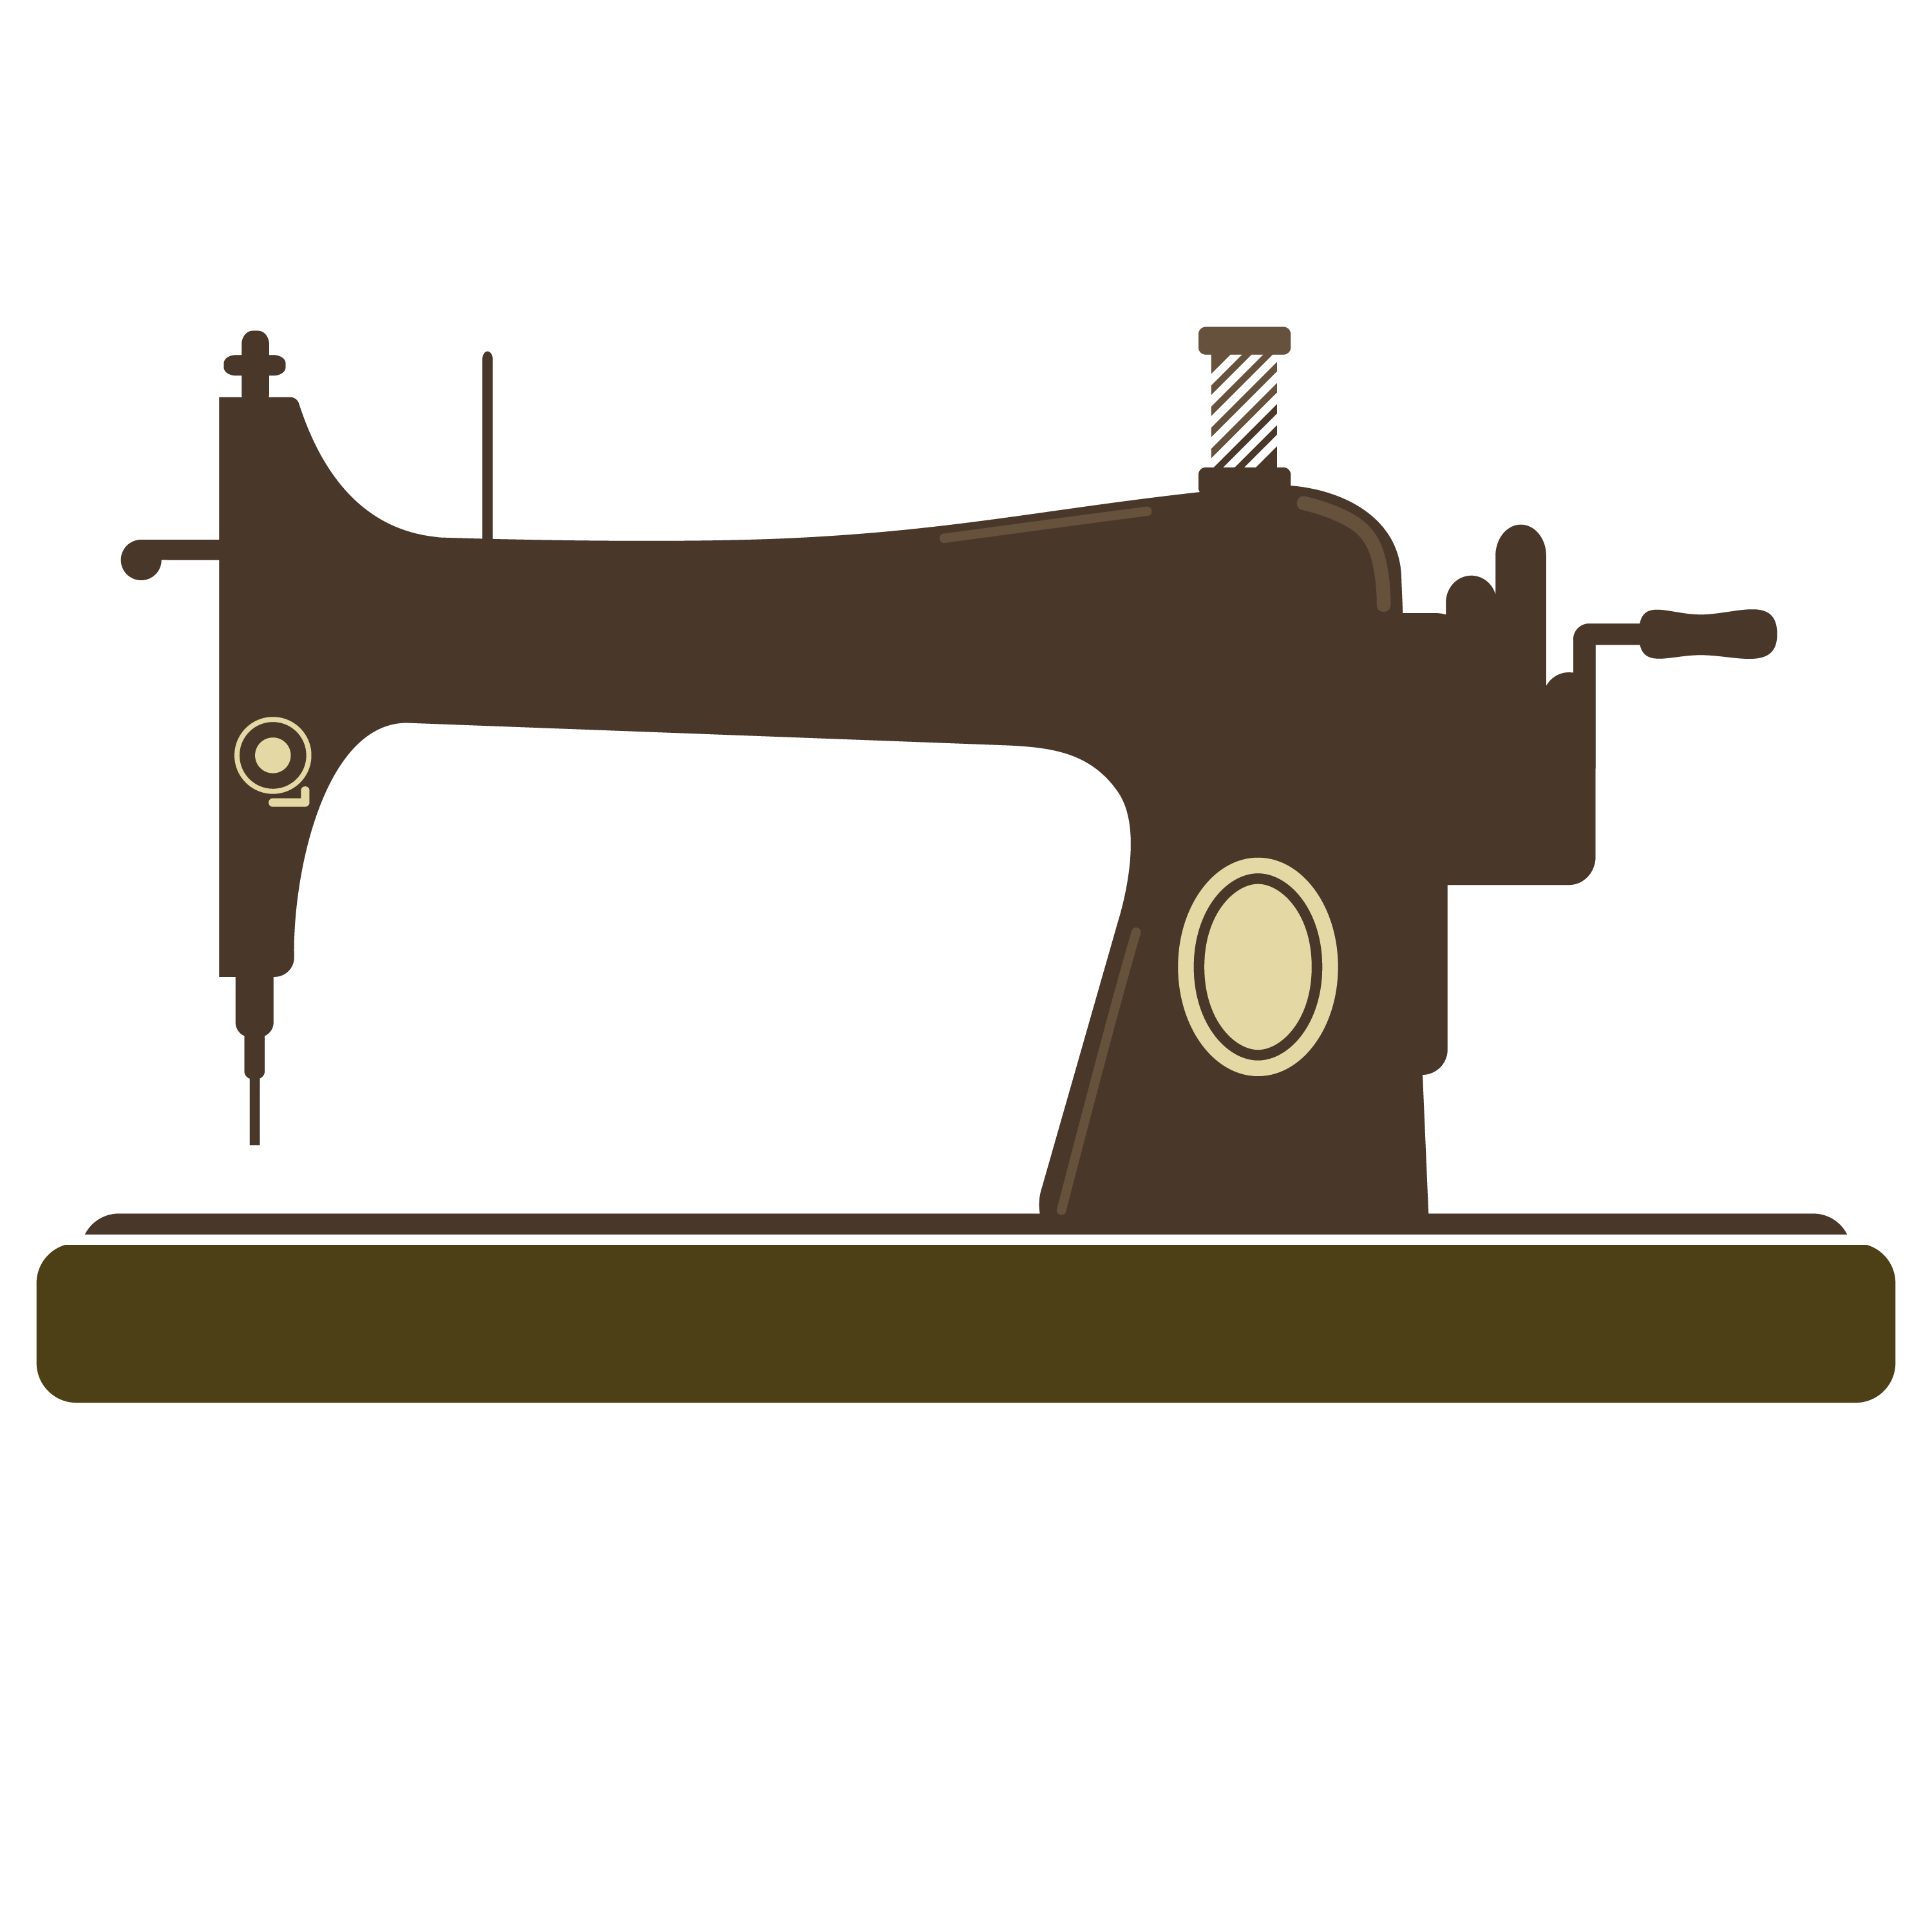 3000x3000 Sewing Machine Clipart Graphic